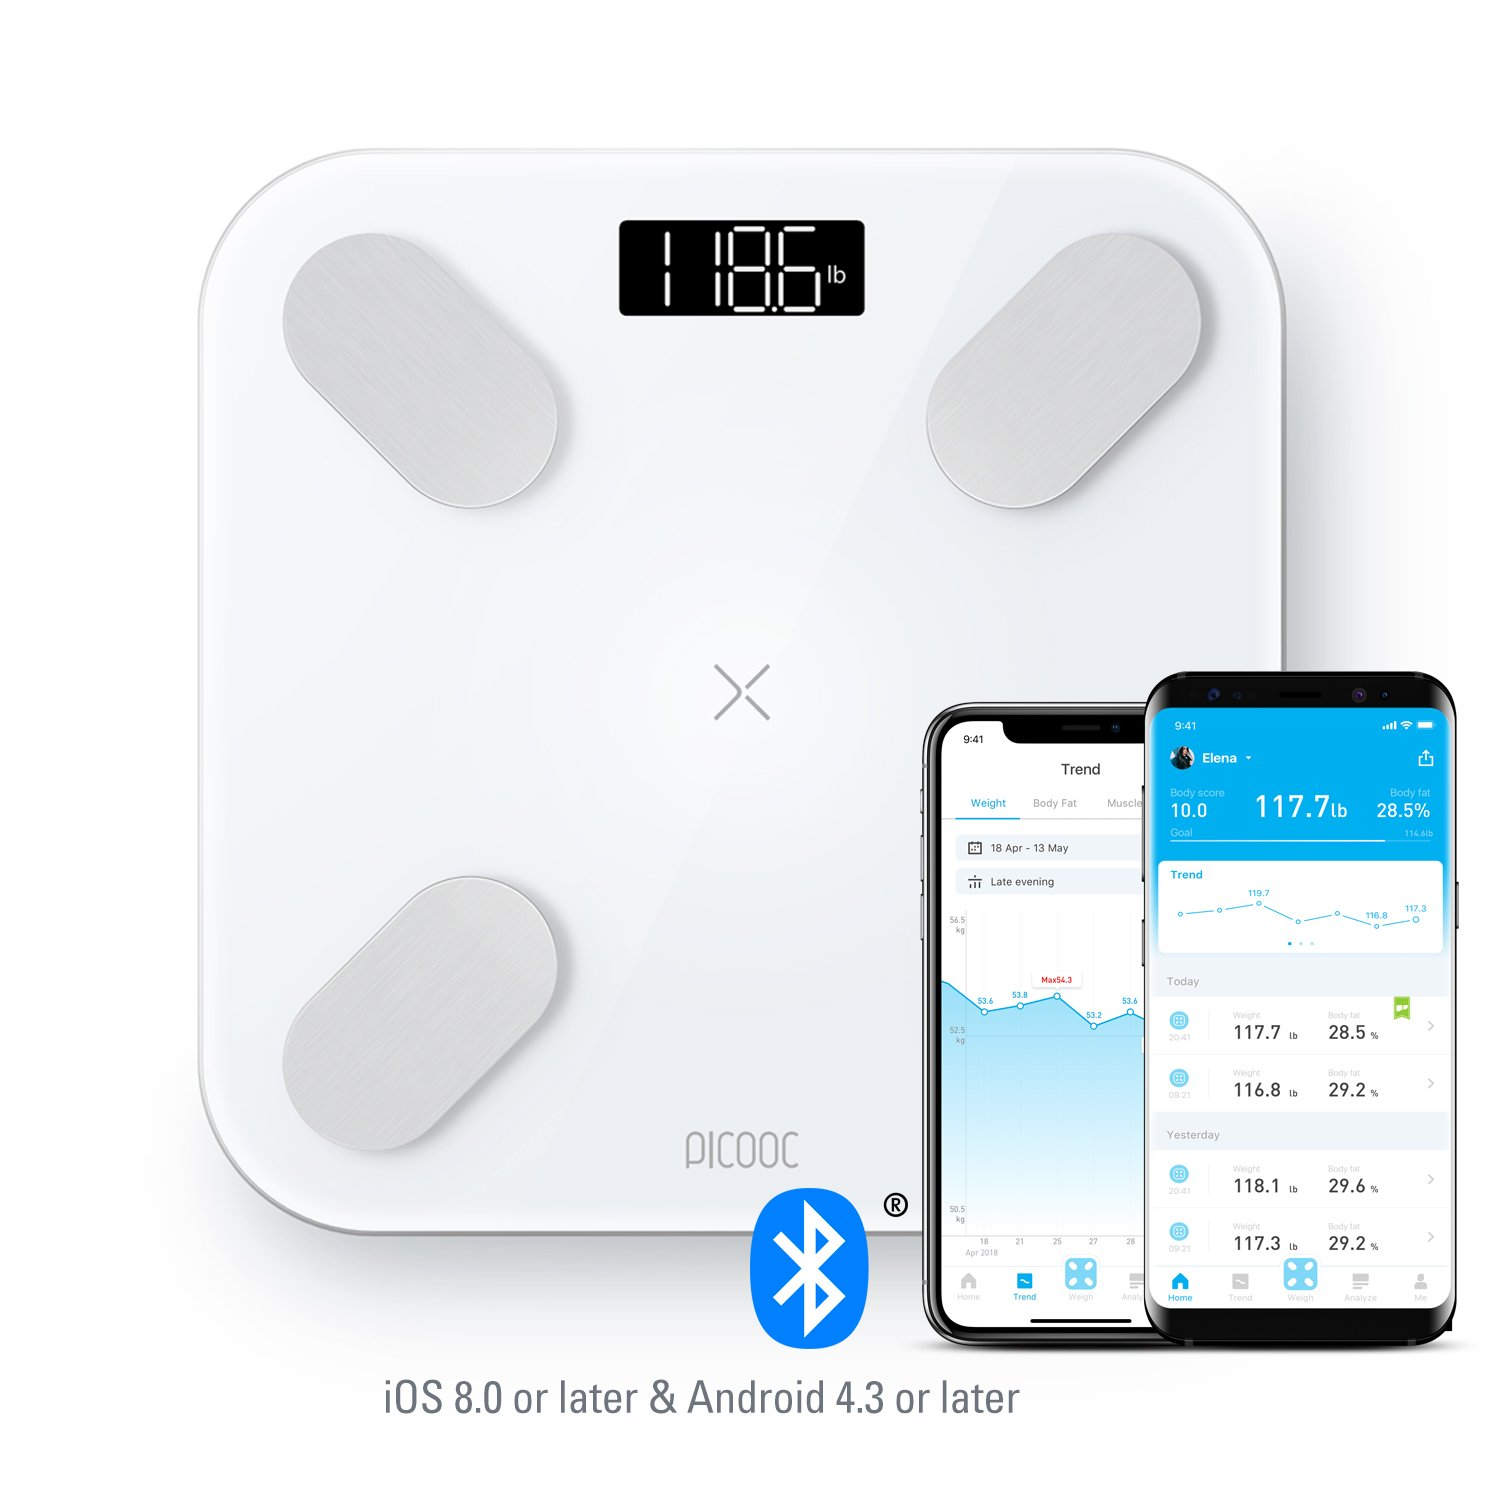 PICOOC Big PRO Bluetooth Smart Body Fat Scale, Wireless Digital Bathroom Scale with iOS & Android App, Body Composition Analyzer, Instant Readout, 13 Measurements for Body Fat, BMI, BMR & More, White